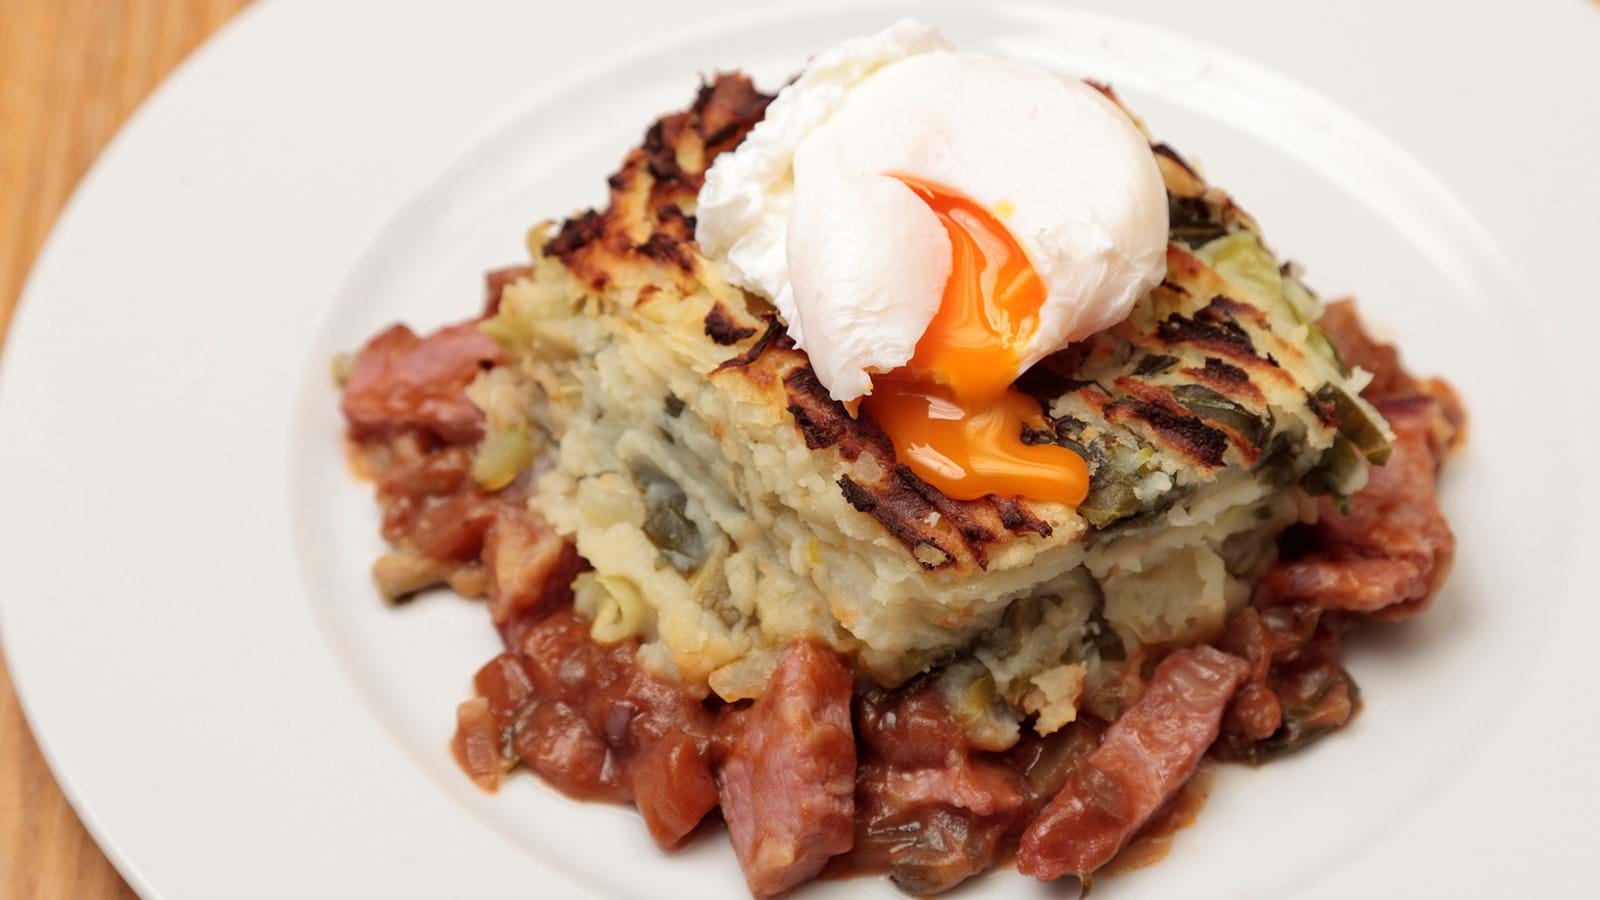 Gammon ham faqs love pork bubble and squeak cottage pie with gammon ccuart Gallery